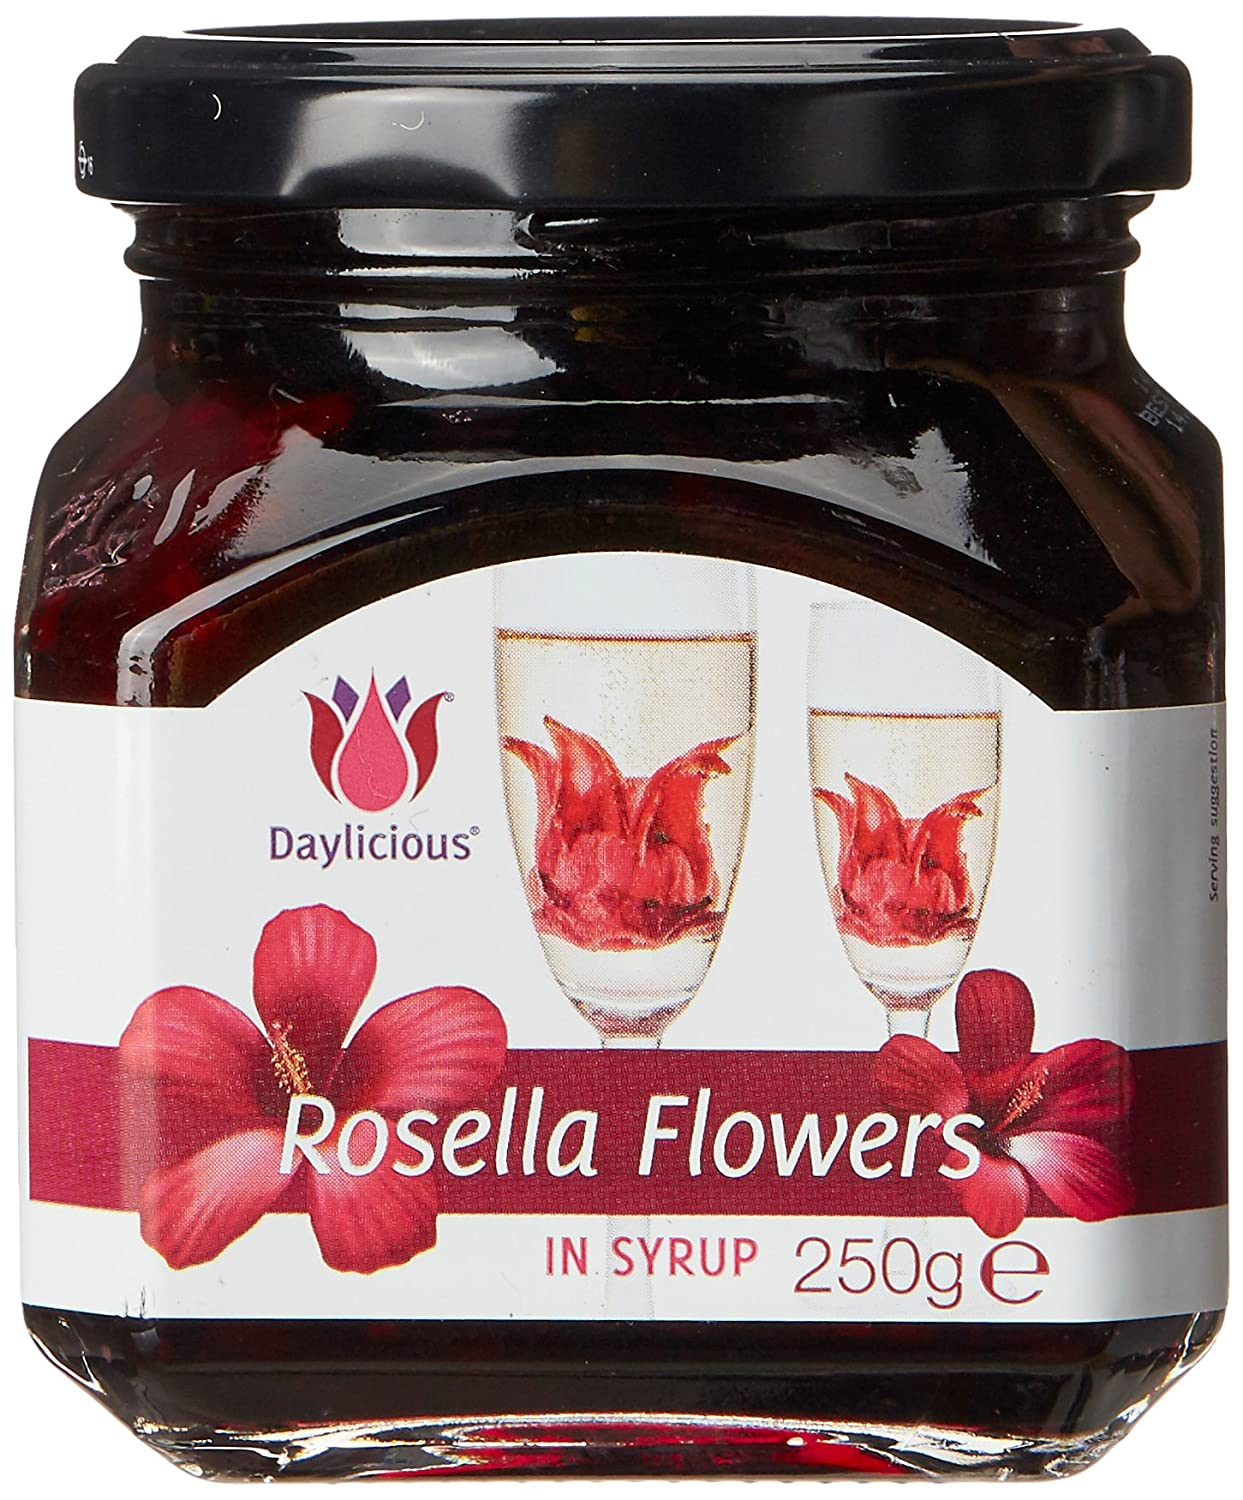 Daylicious edible rosella flowers in syrup 250 gm 11 flowers in daylicious edible rosella flowers in syrup 250 gm 11 flowers in syrup amazon grocery gourmet foods dhlflorist Choice Image